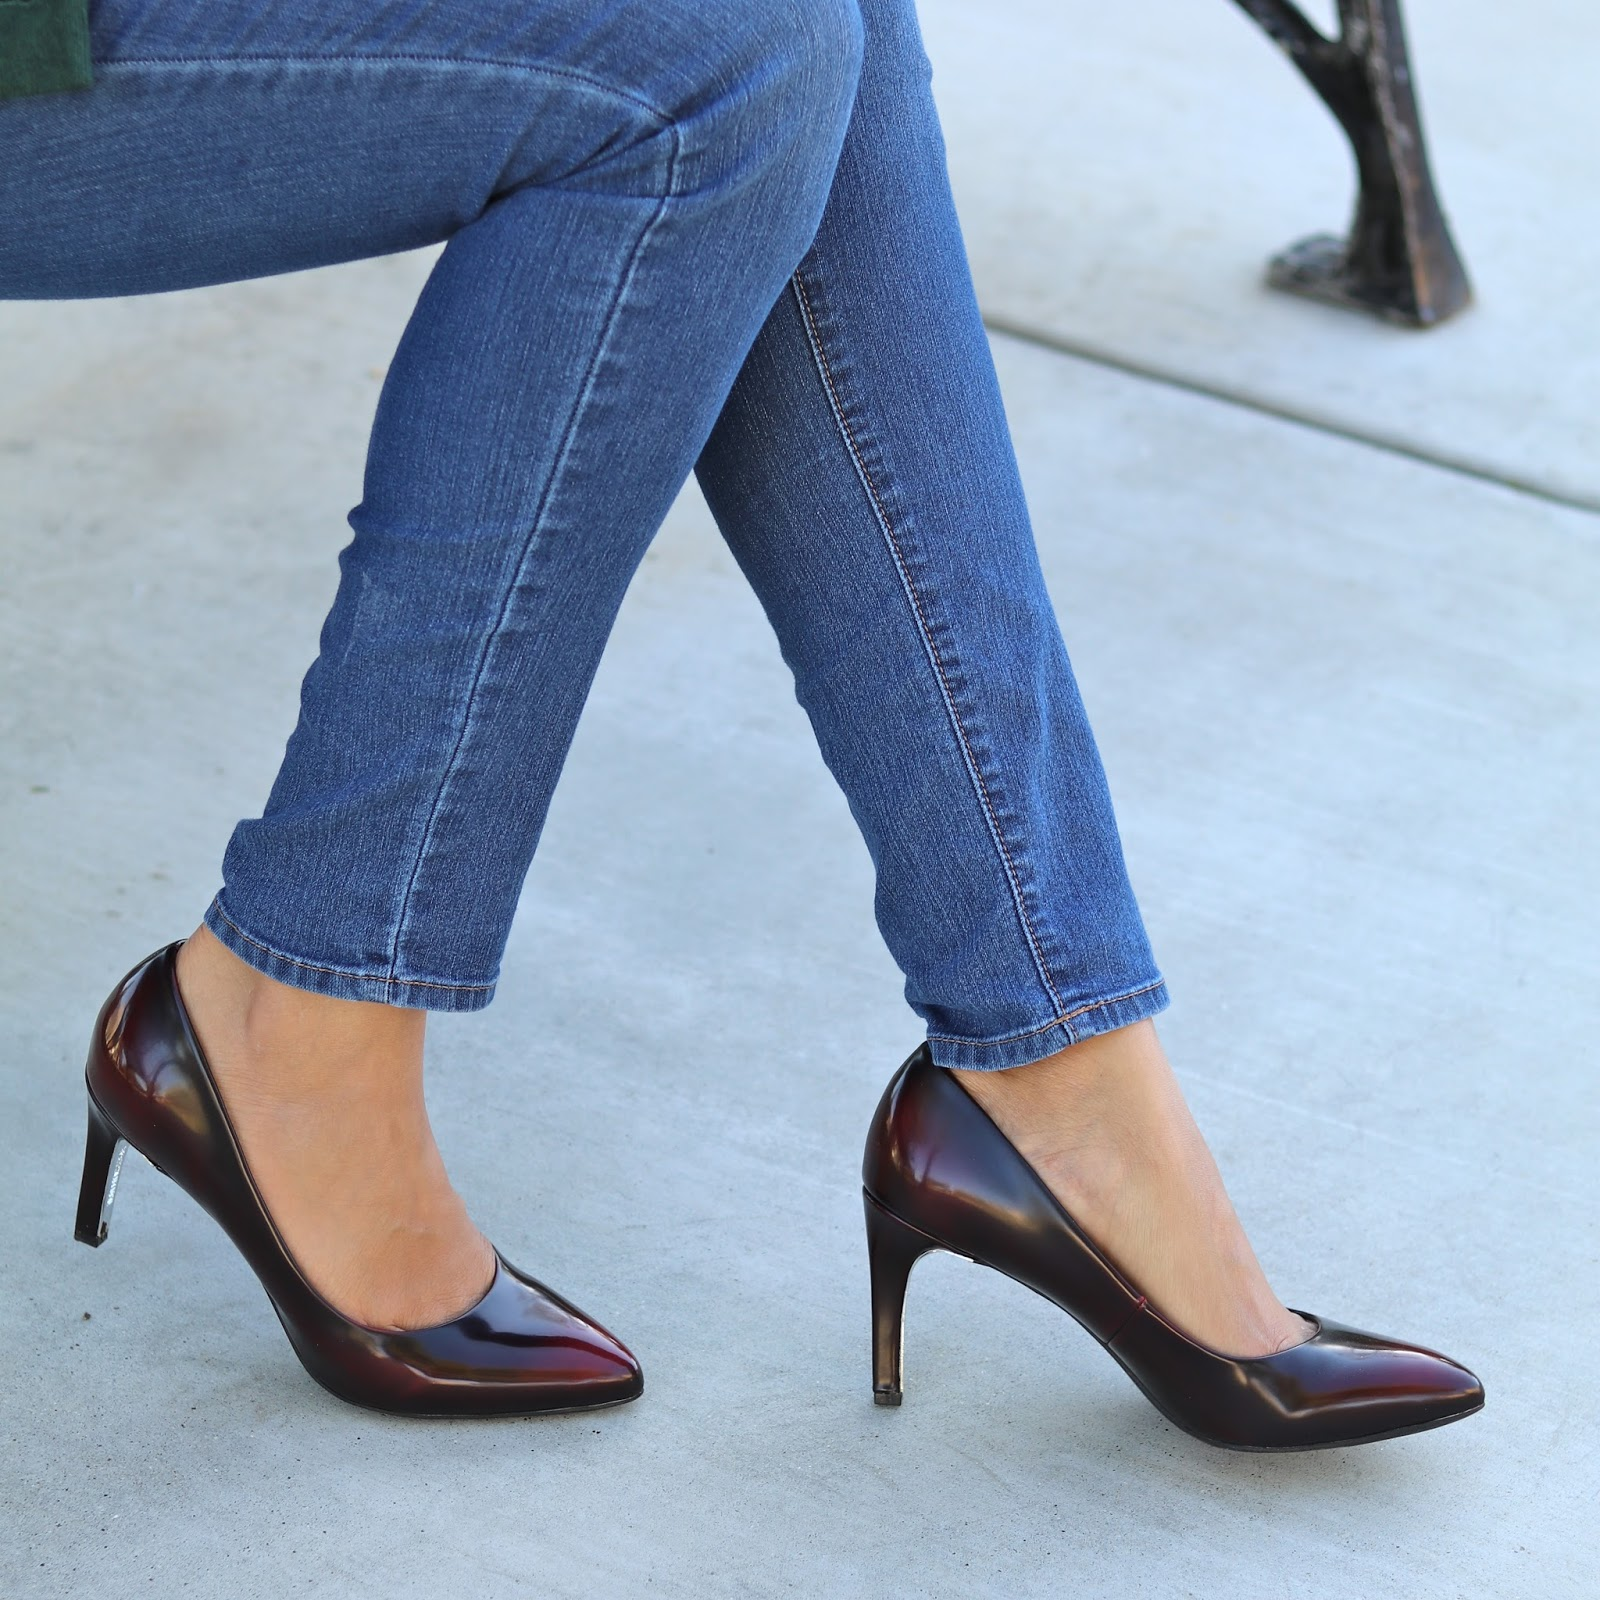 LS Revolution Catwalk Pump, Burgundy pumps, comfortable pumps